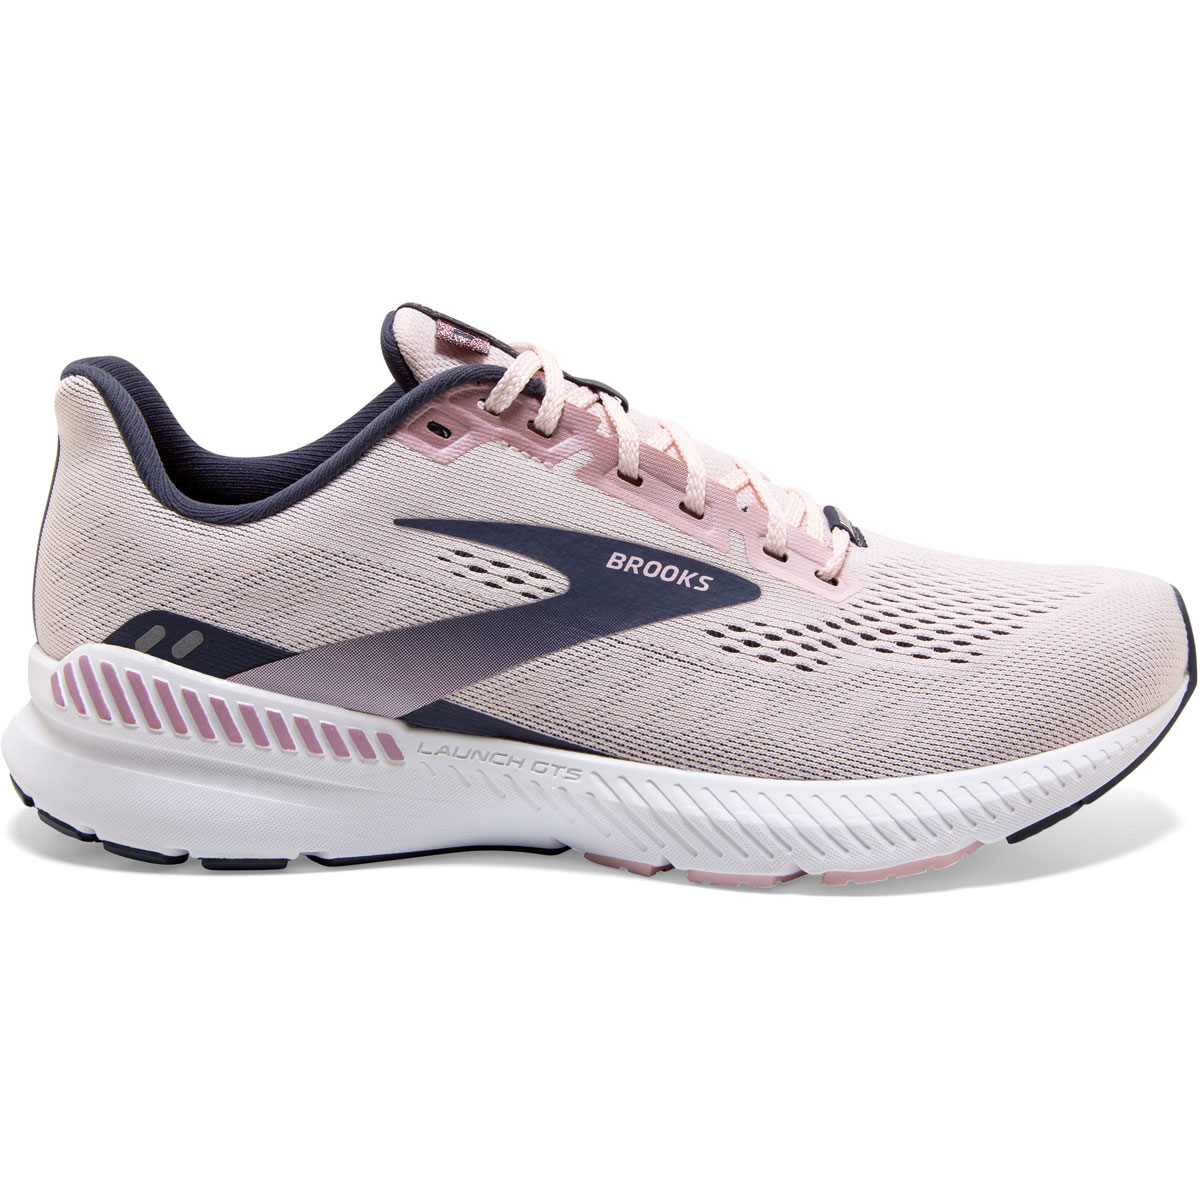 Women's Brooks Launch GTS 8 Running Shoe - Color: Primrose/Ombre - Size: 5 - Width: Regular, Primrose/Ombre, large, image 1